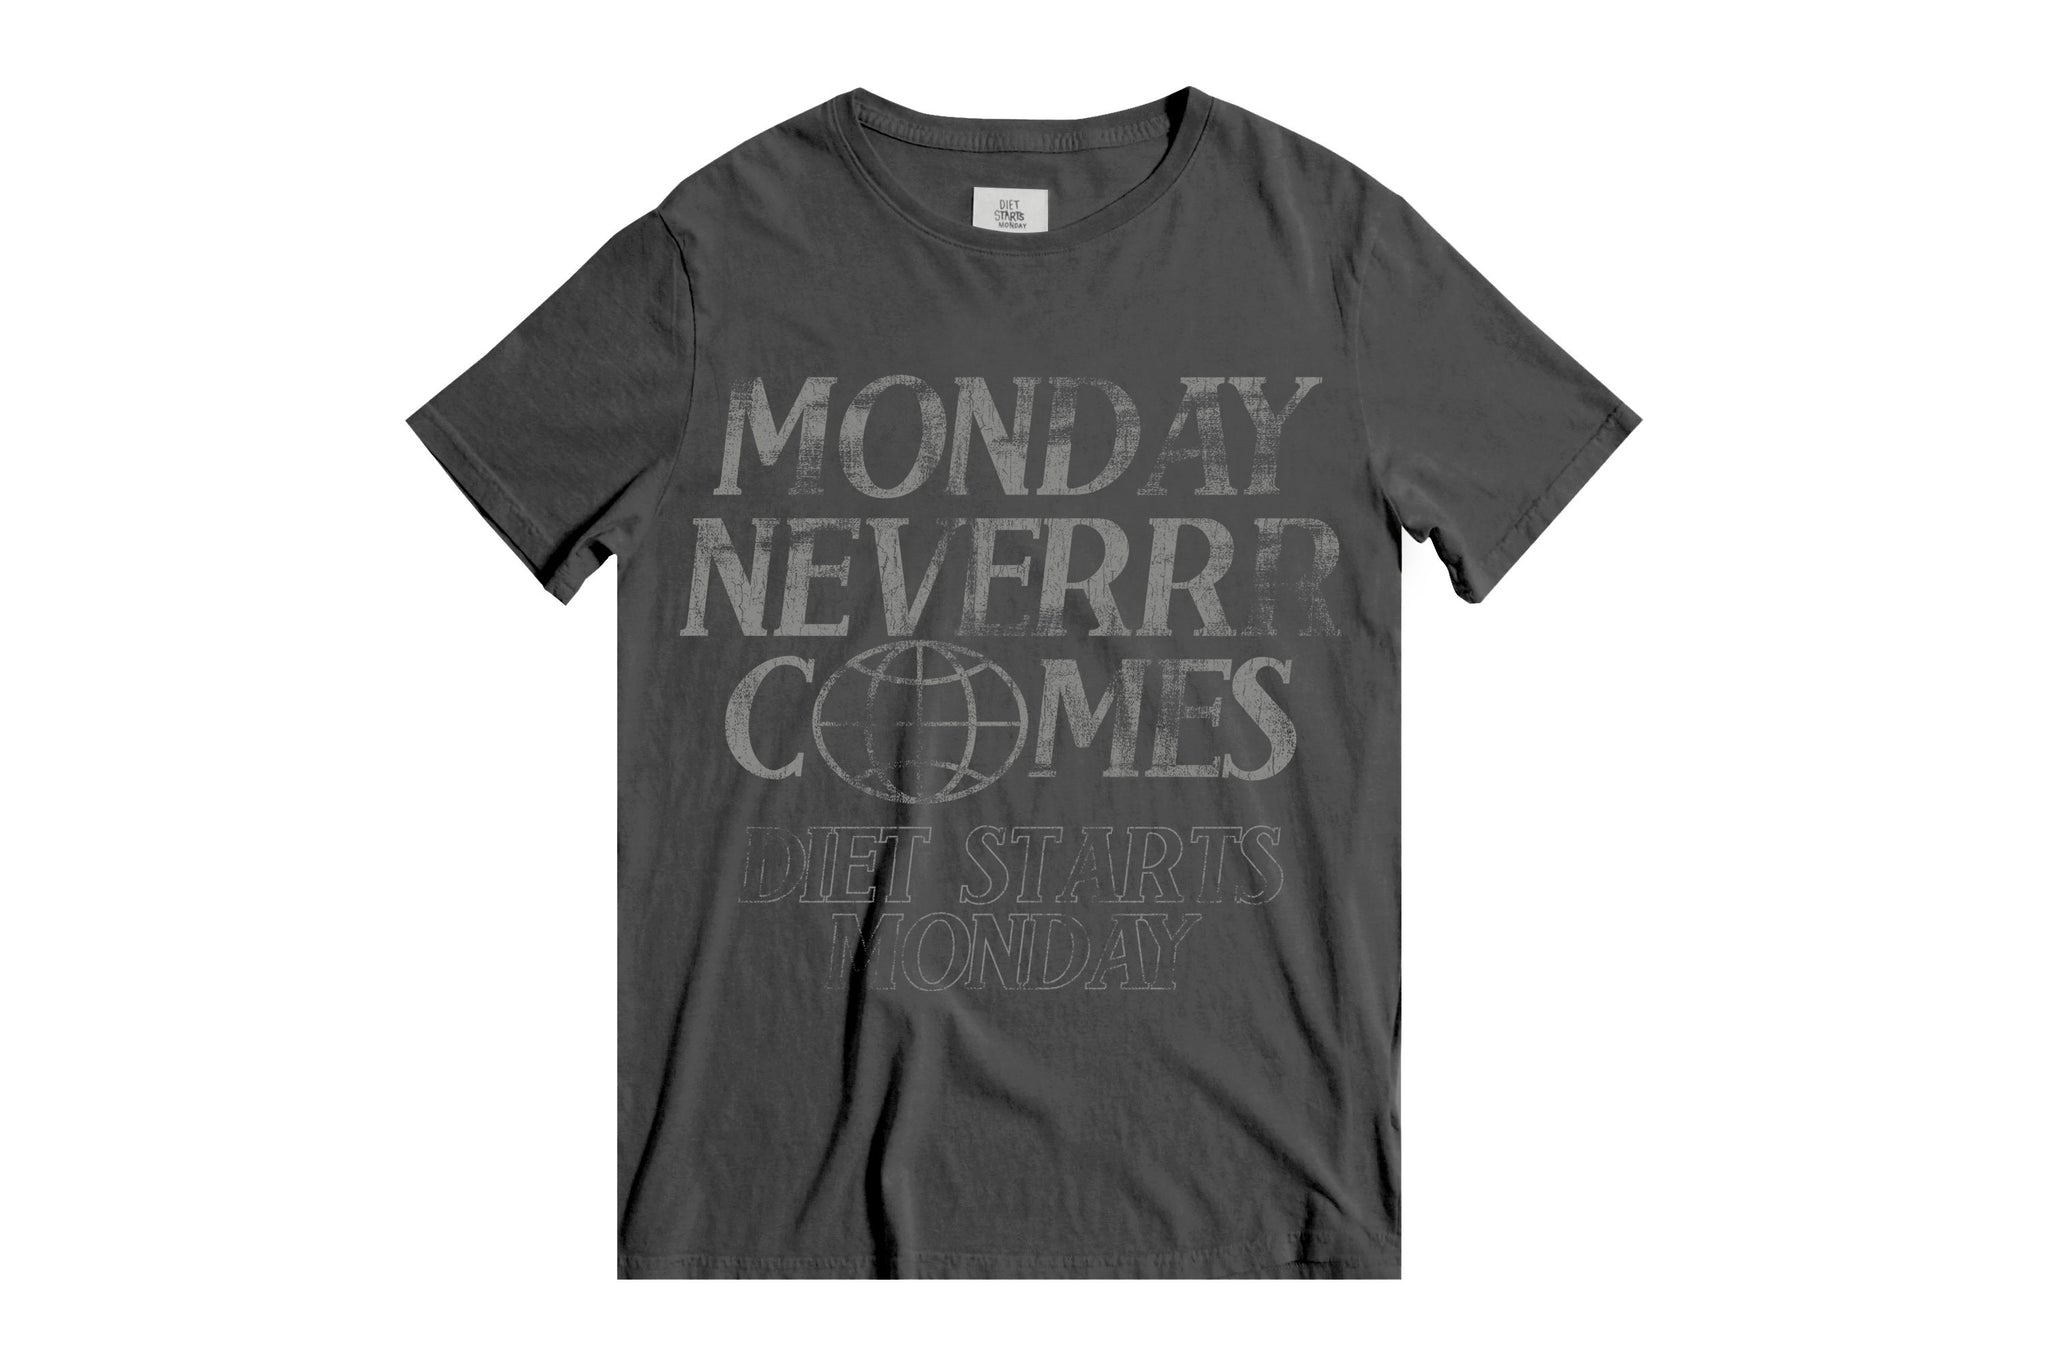 Monday Never Comes Tee - Vintage Black